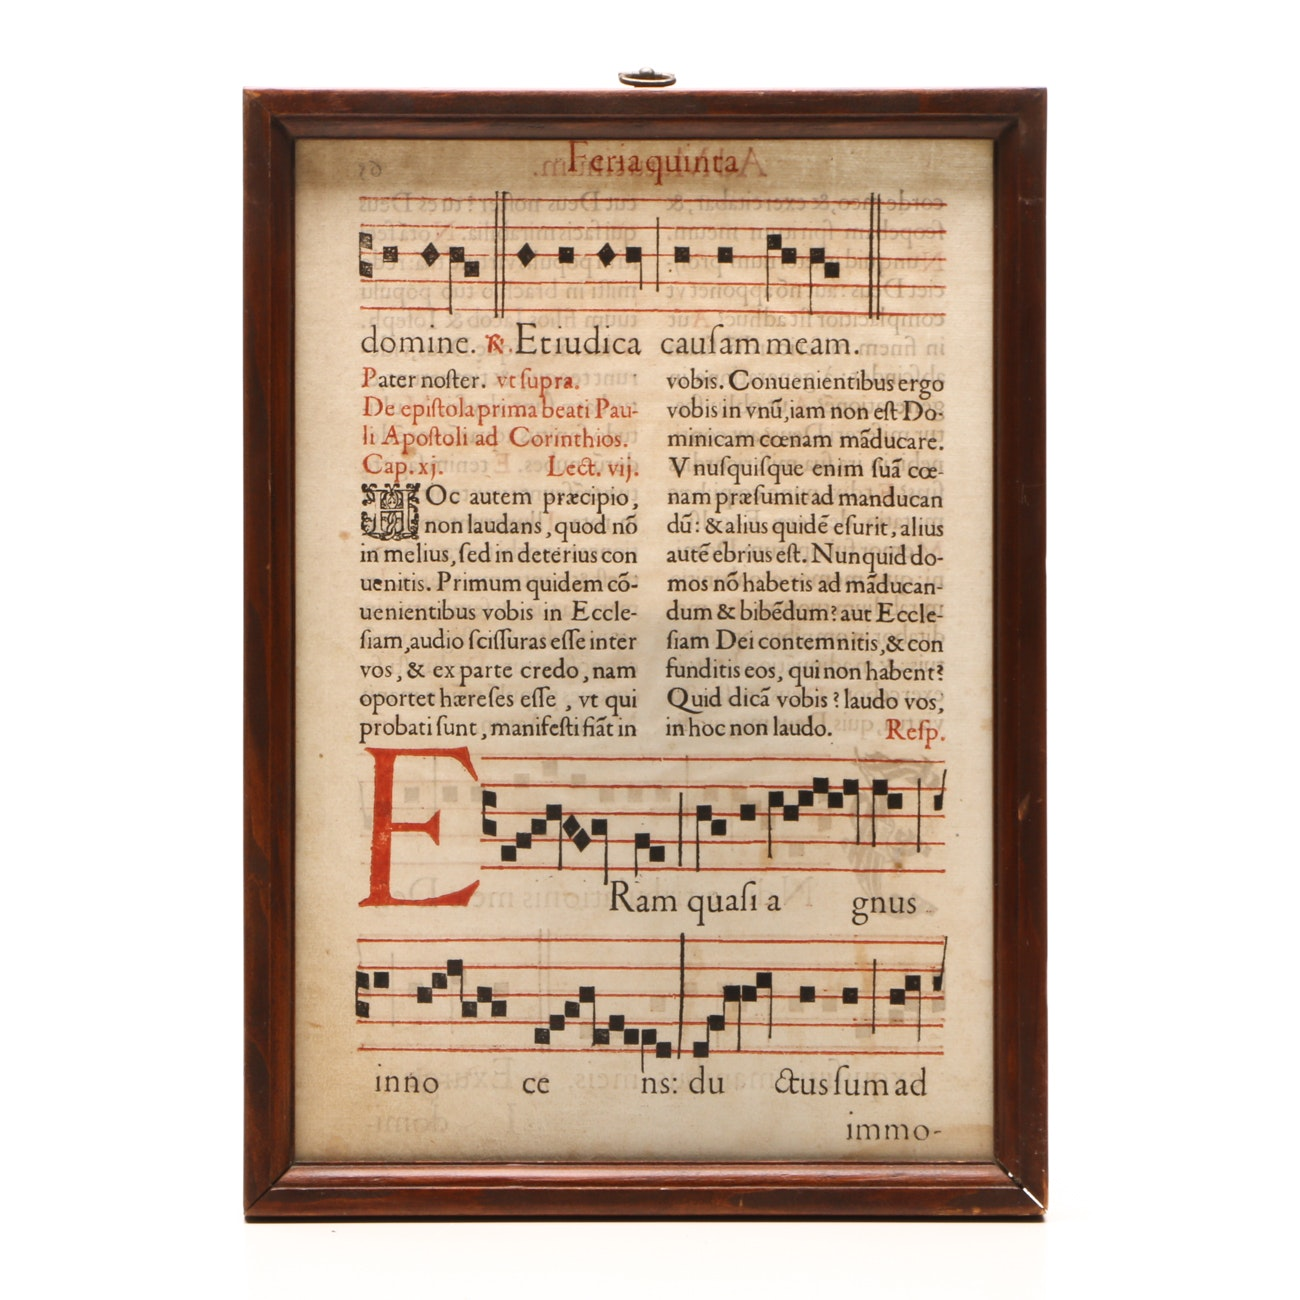 Antique Leaf from Antiphonal Book of Song